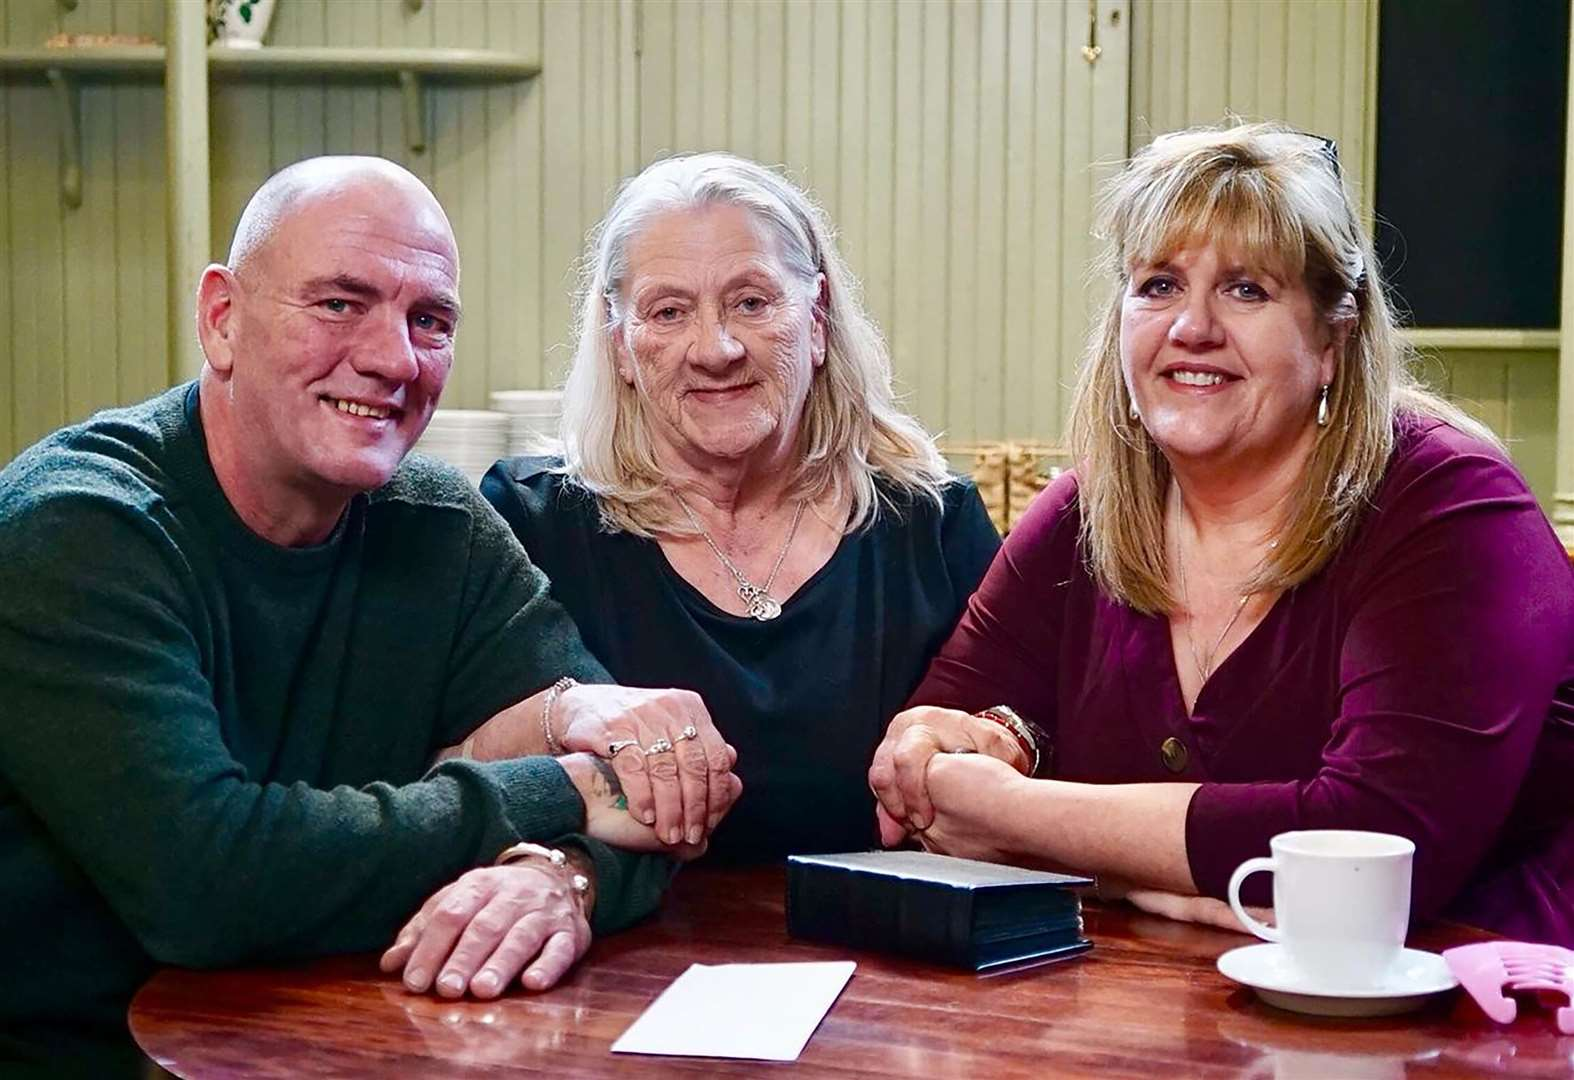 Long Lost Family reunion had a unique twist never before seen on the ITV programme